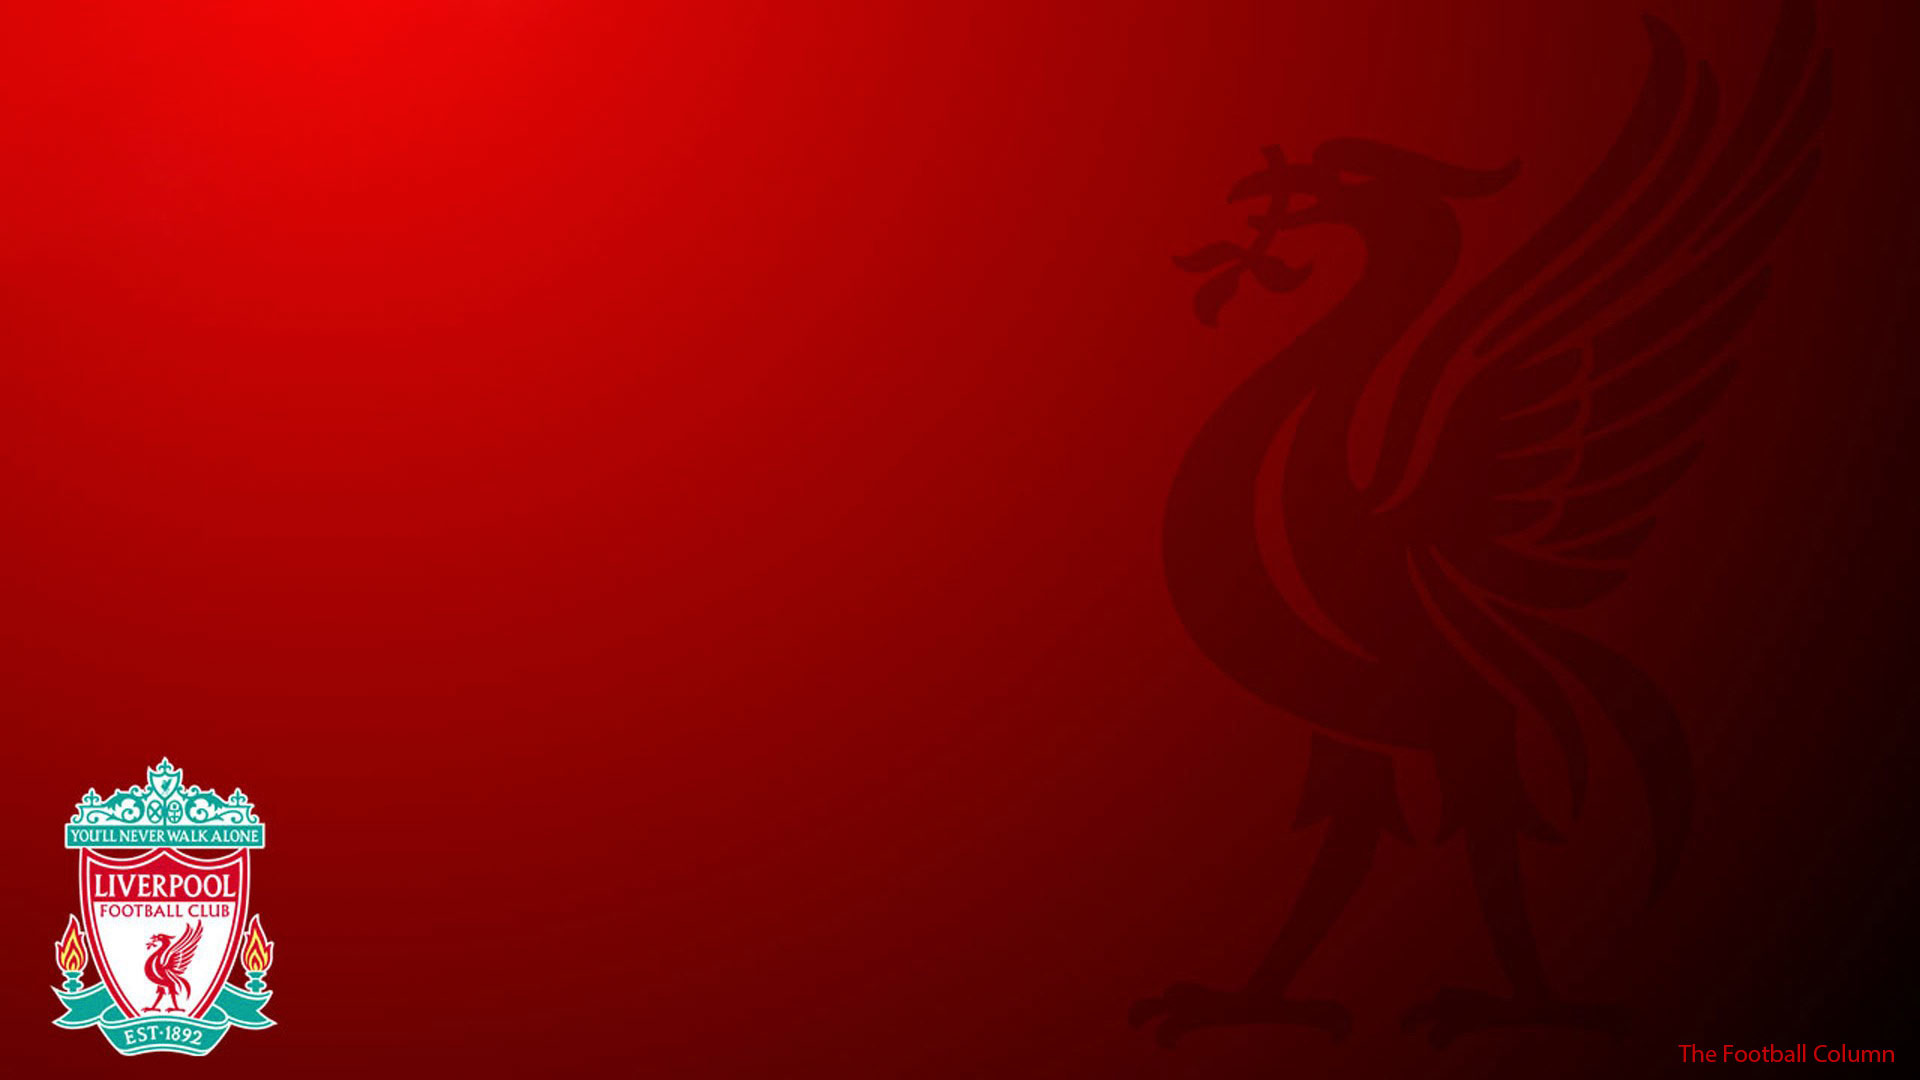 Liverpool Fc Hd Images